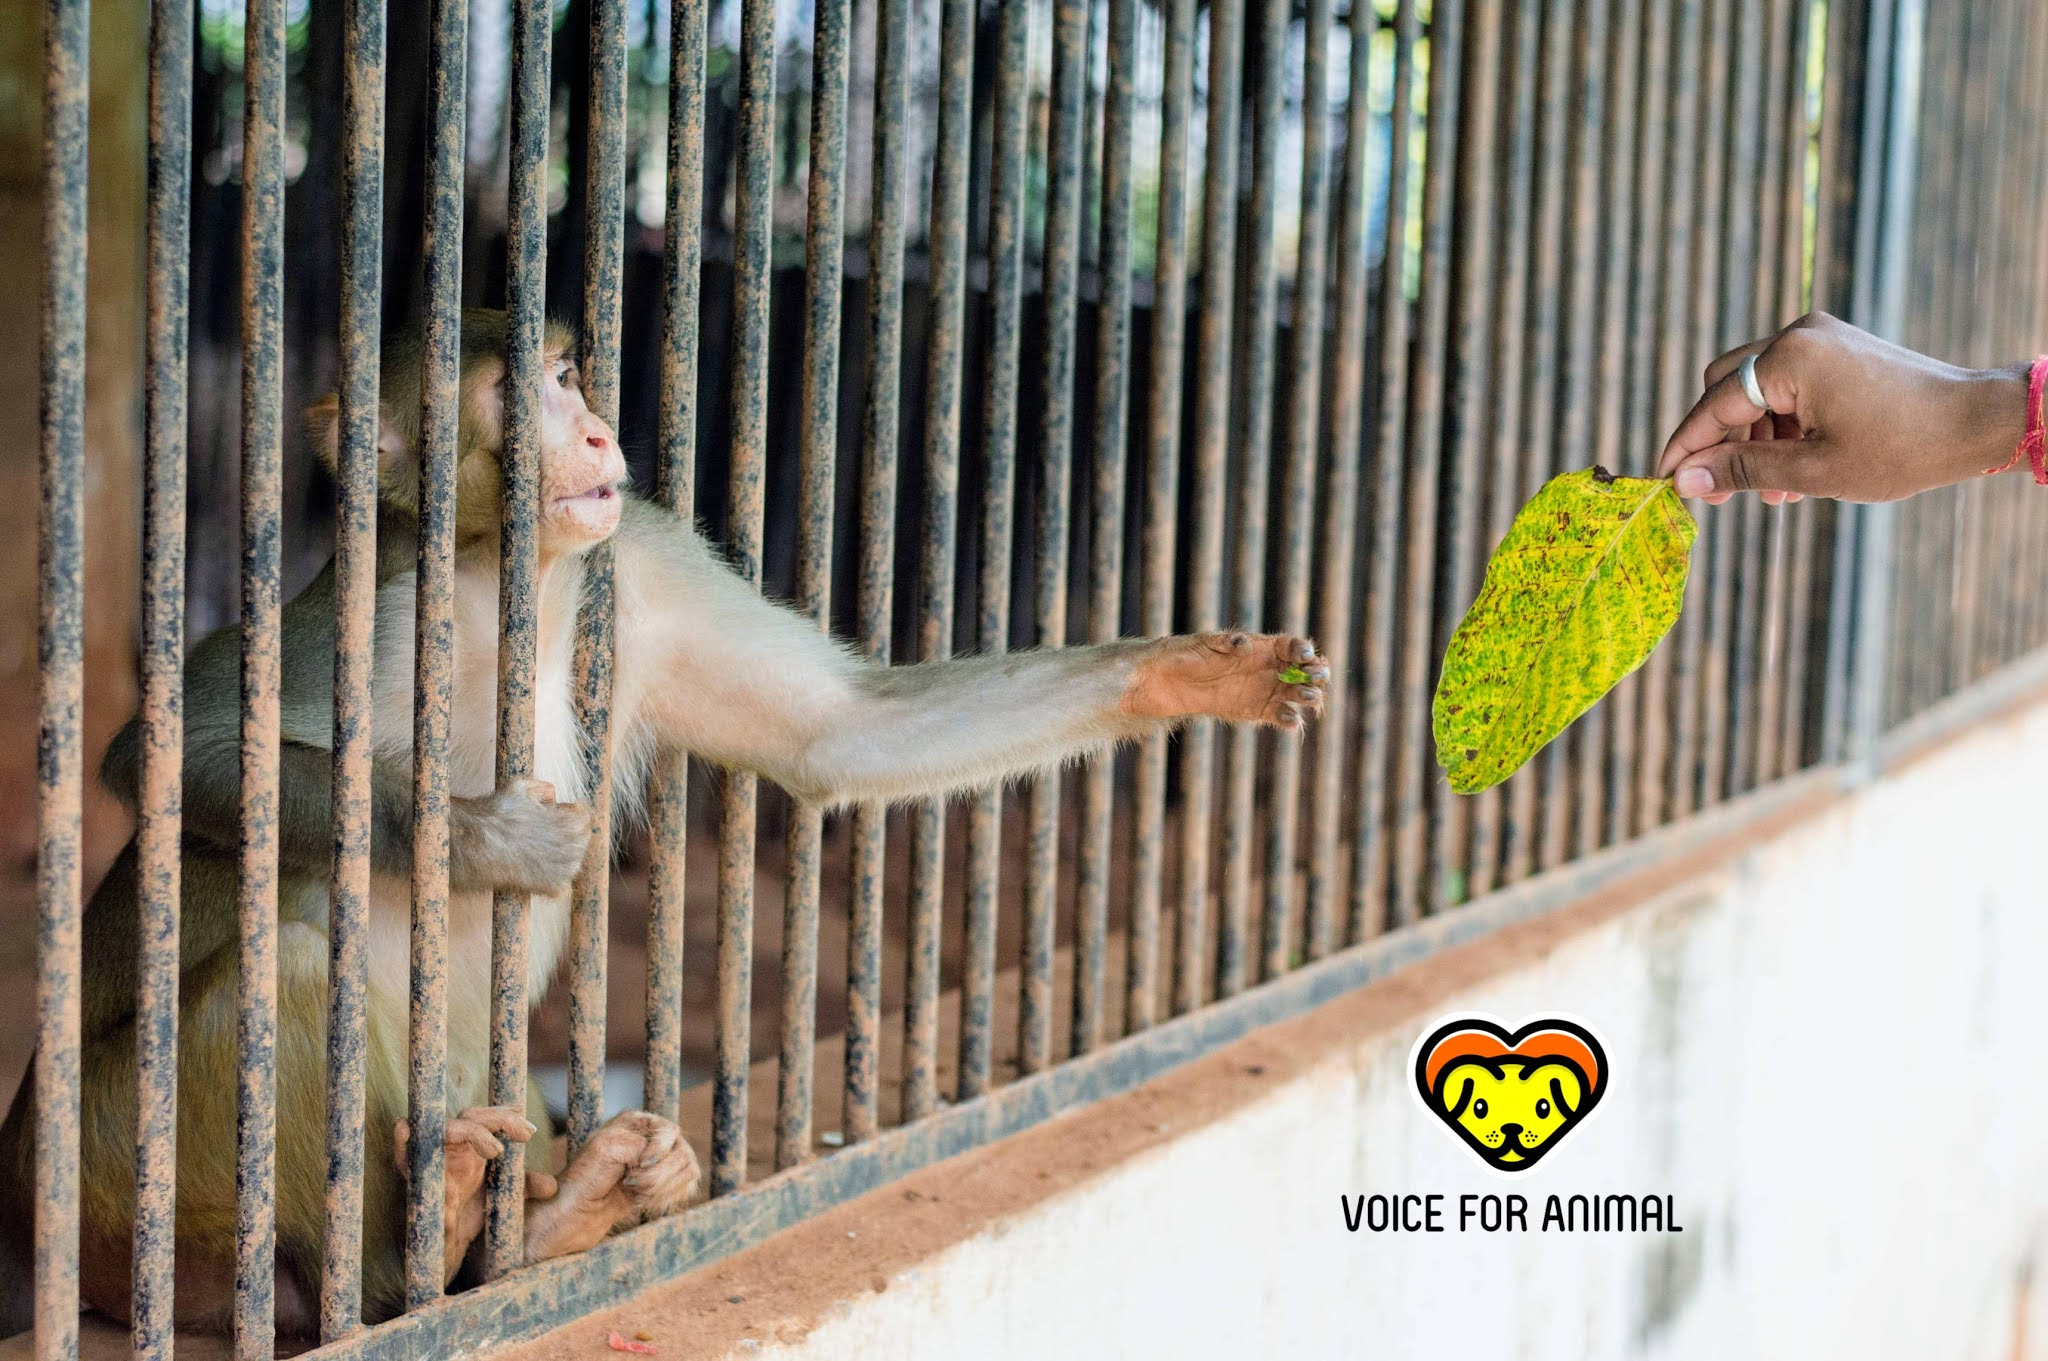 Zoos are Prisons for Animals